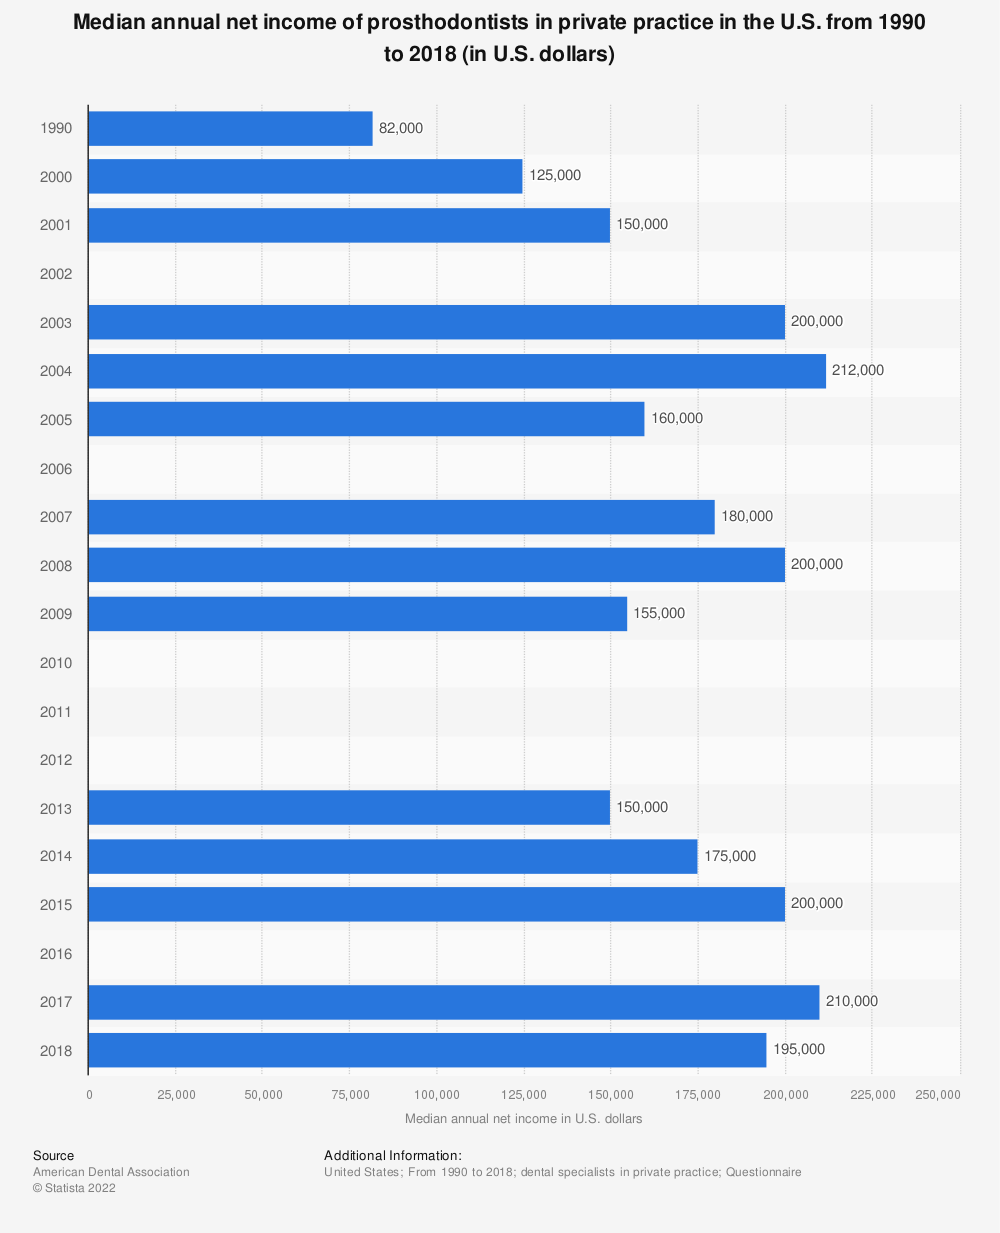 Statistic: Median annual net income of prosthodontists in private practice in the U.S. from 1990 to 2018 (in U.S. dollars) | Statista